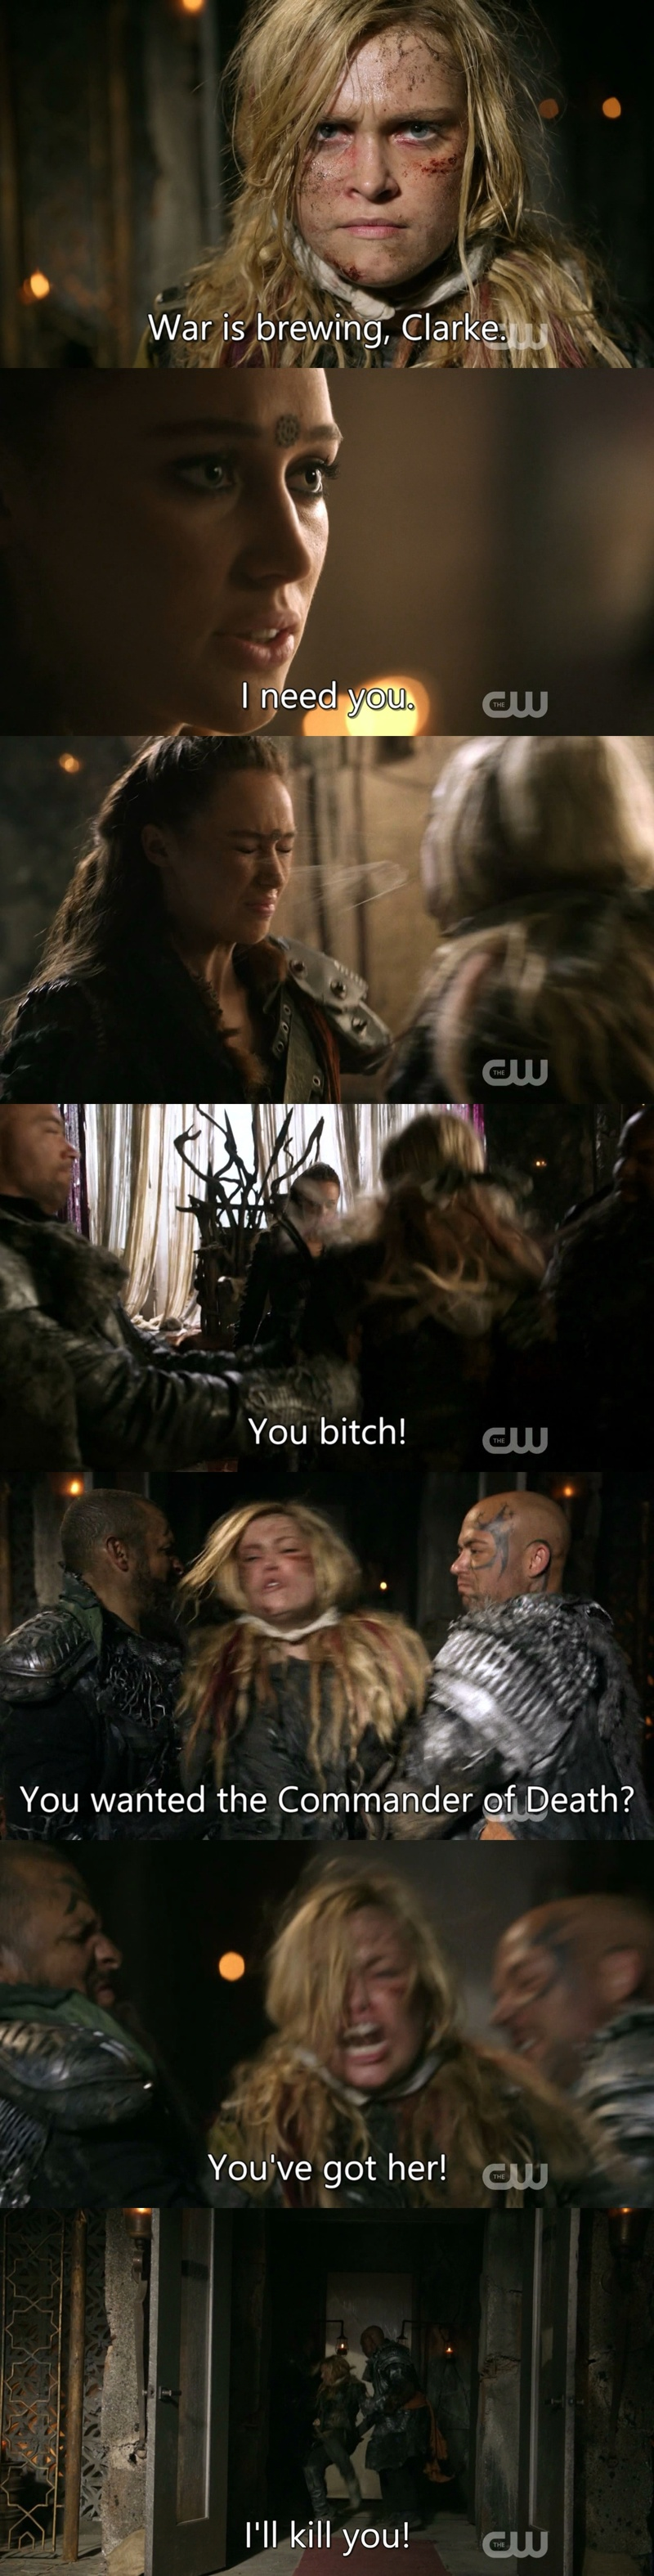 Best moment of the episode (well second best, after #Bellarke brief reunion). I hope Clarke never forgive Lexa.